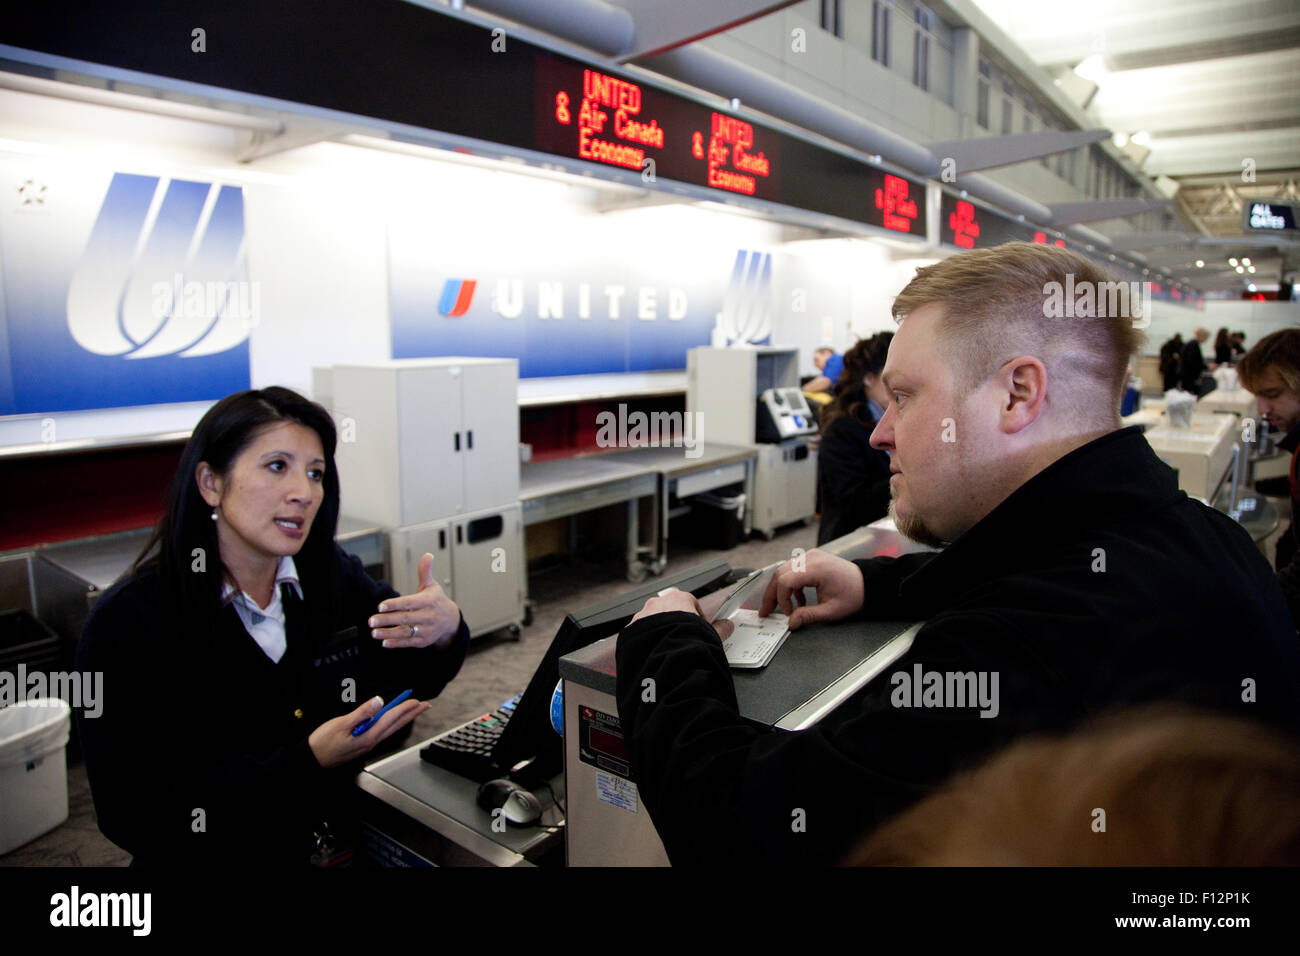 Airline counter clerk gesturing with her hands helping passenger with his check in. Minneapolis Minnesota MN USA - Stock Image